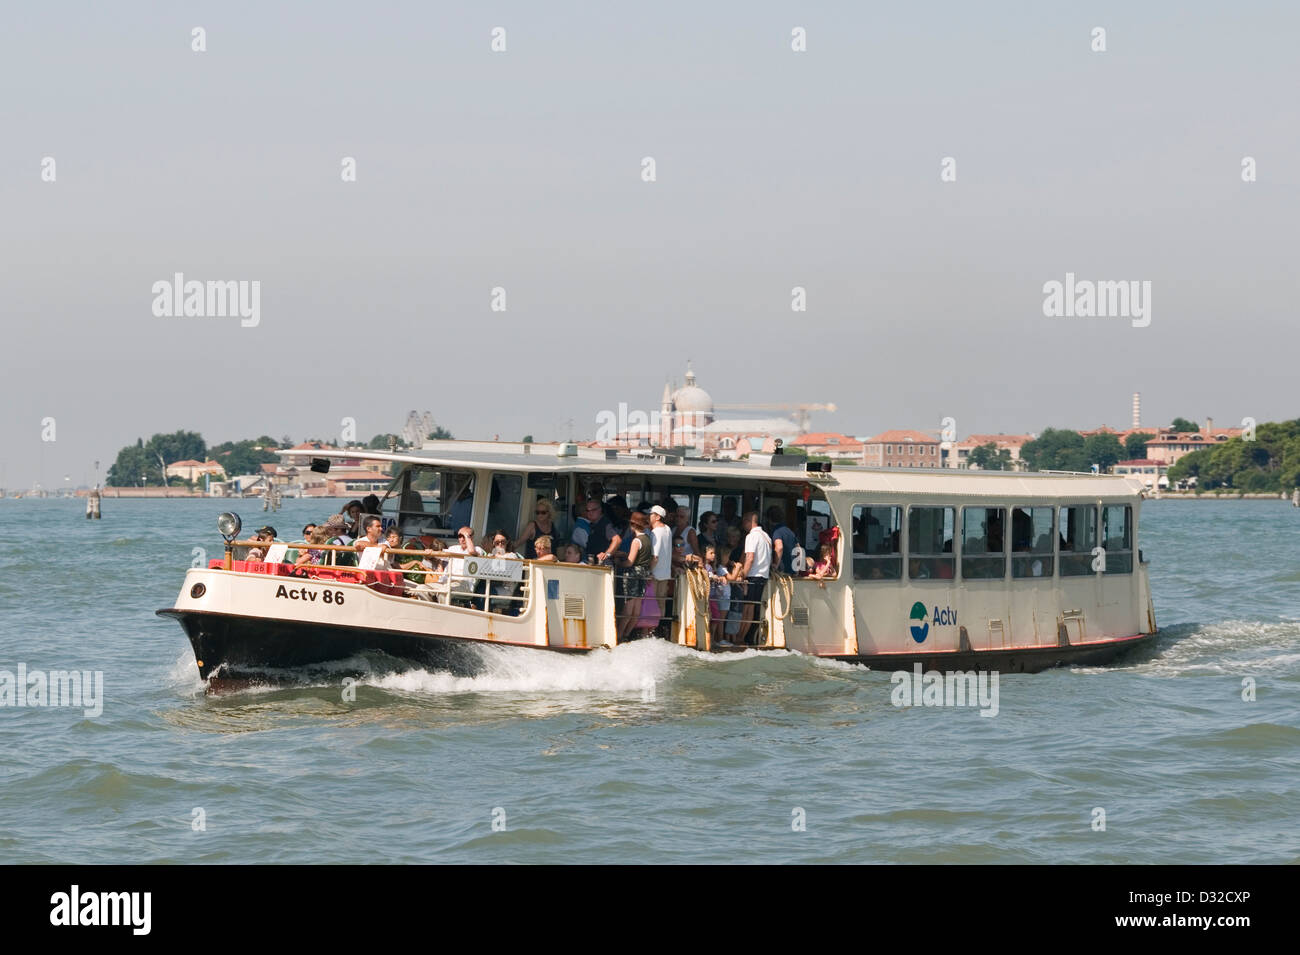 A busy vaporetto (water-bus), Venice, Italy. - Stock Image